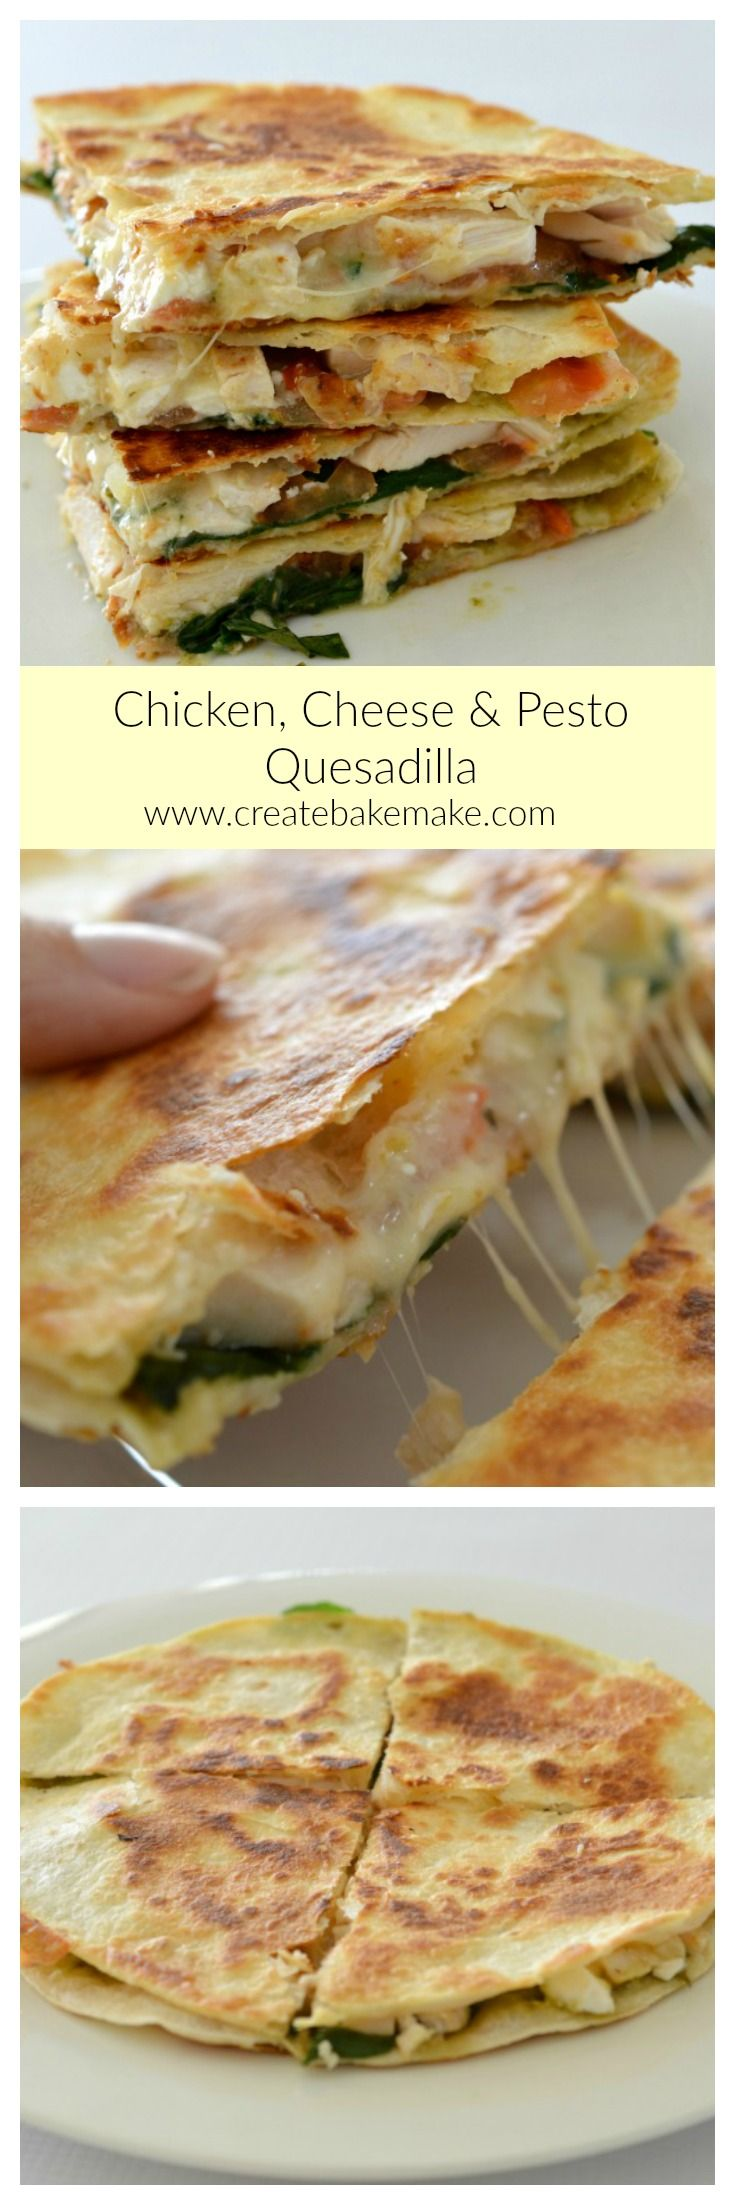 This Cheesy Chicken Cheese and Pesto Quesadilla is both easy and delicious, making it the perfect simple lunch or dinner!